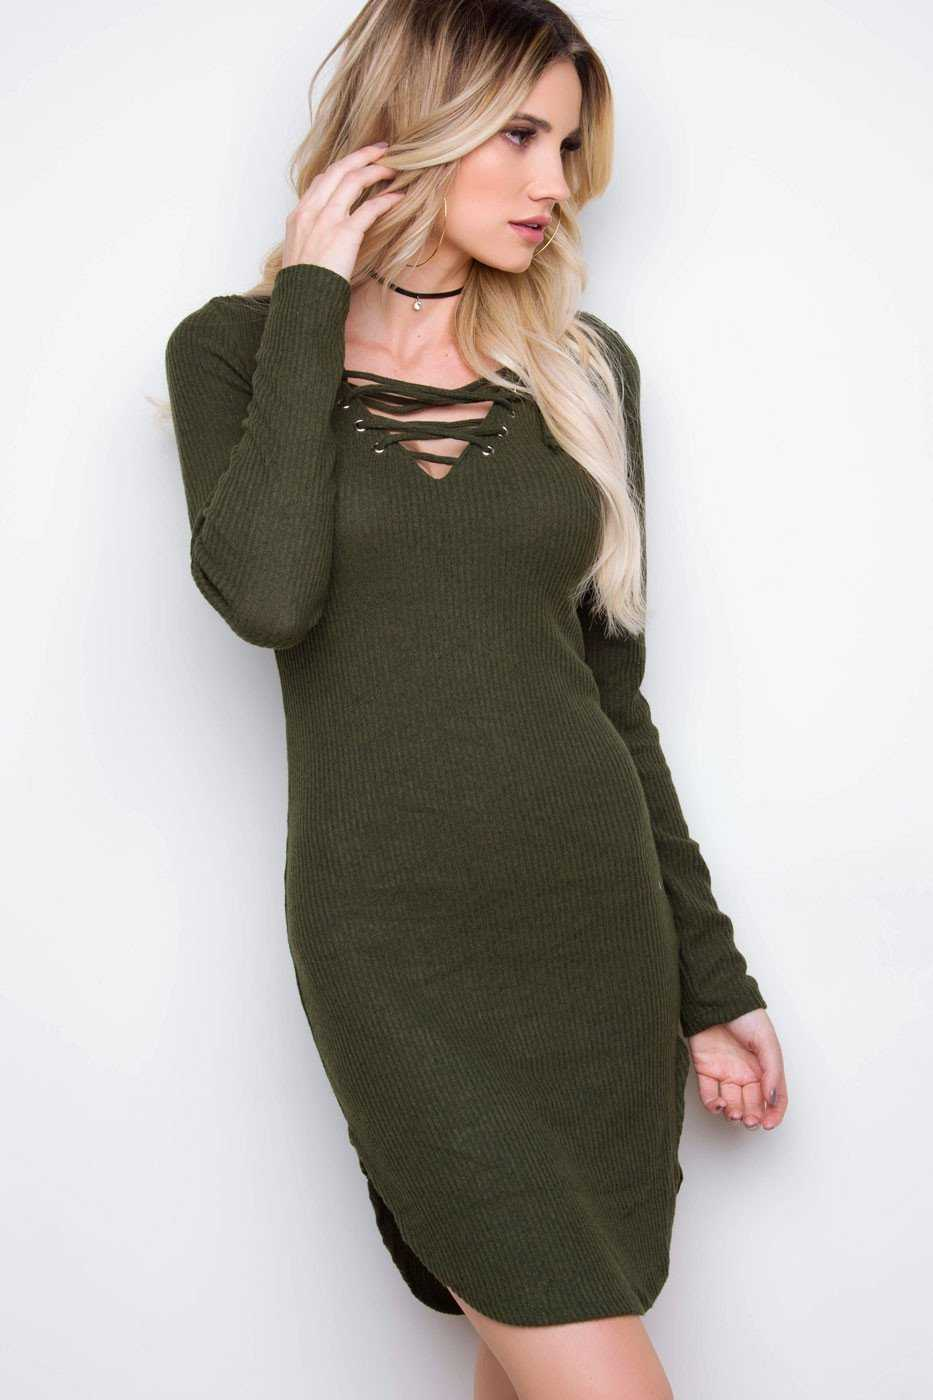 Dresses - Frenzy Lace Up Dress - Dark Olive